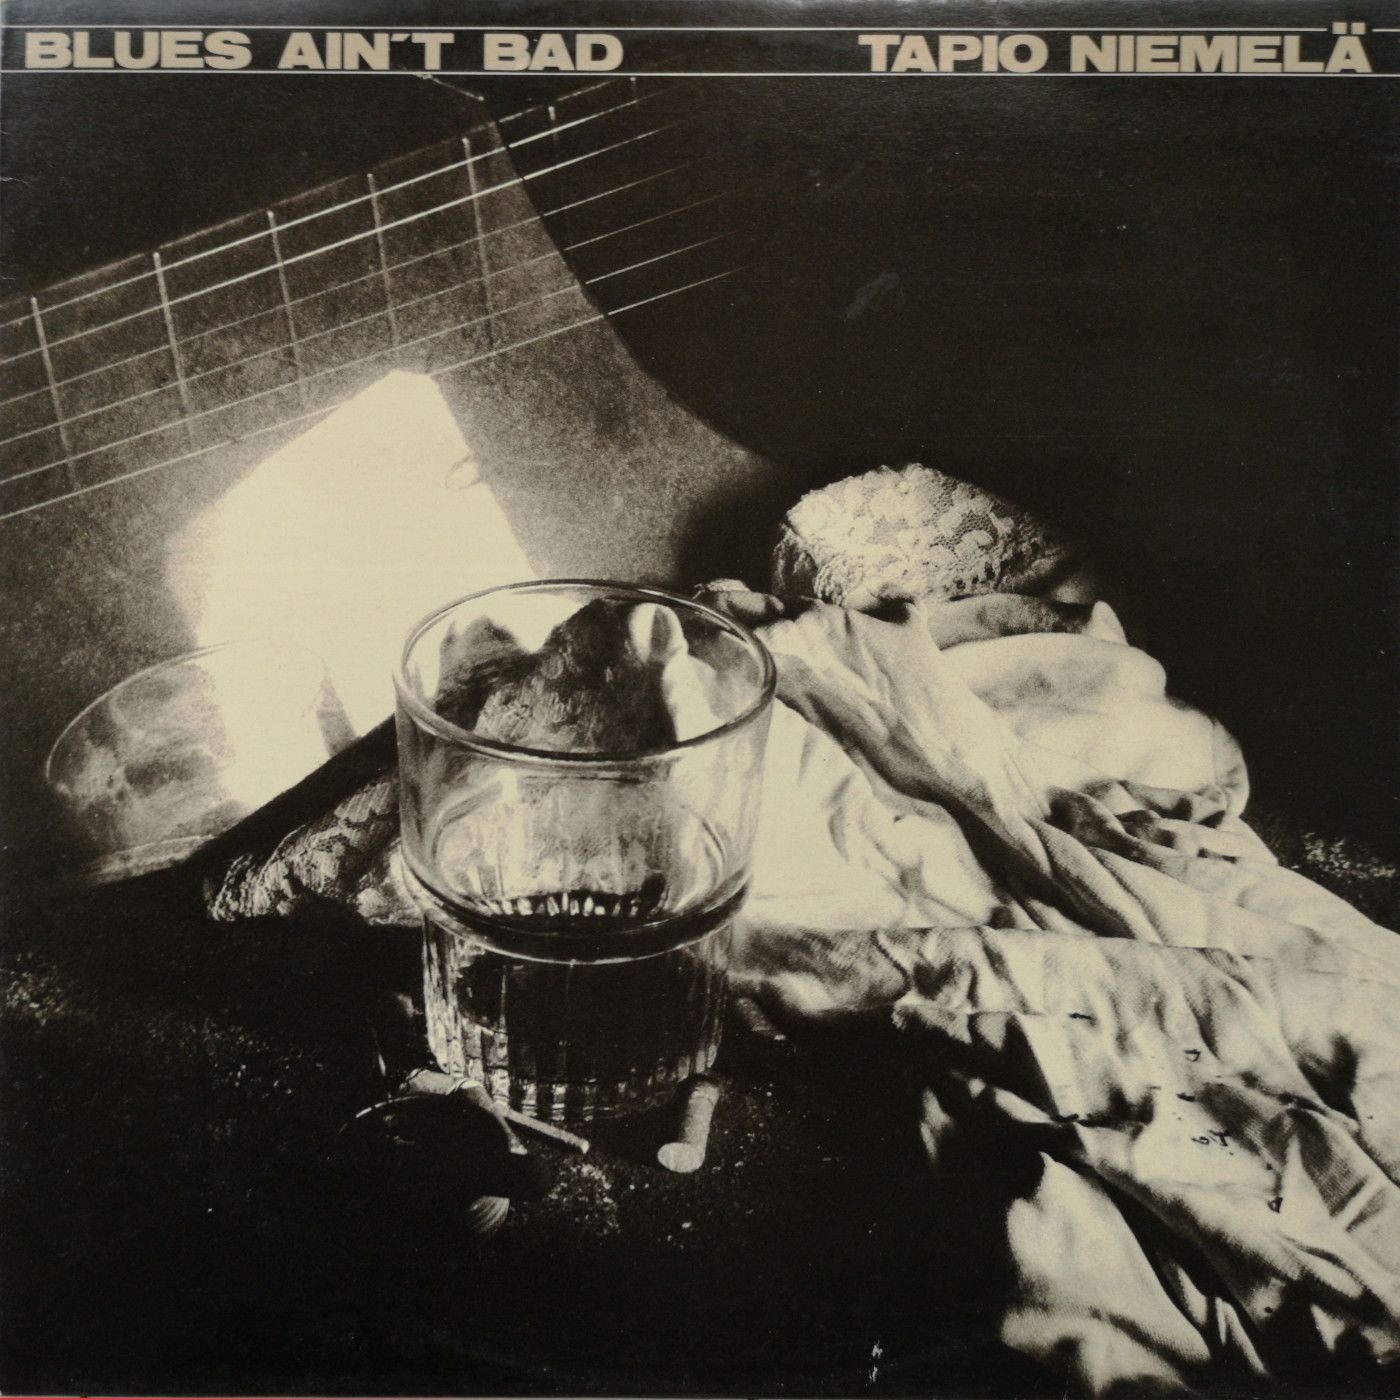 Tapio Niemelä Blues Ain't Bad LP undefined